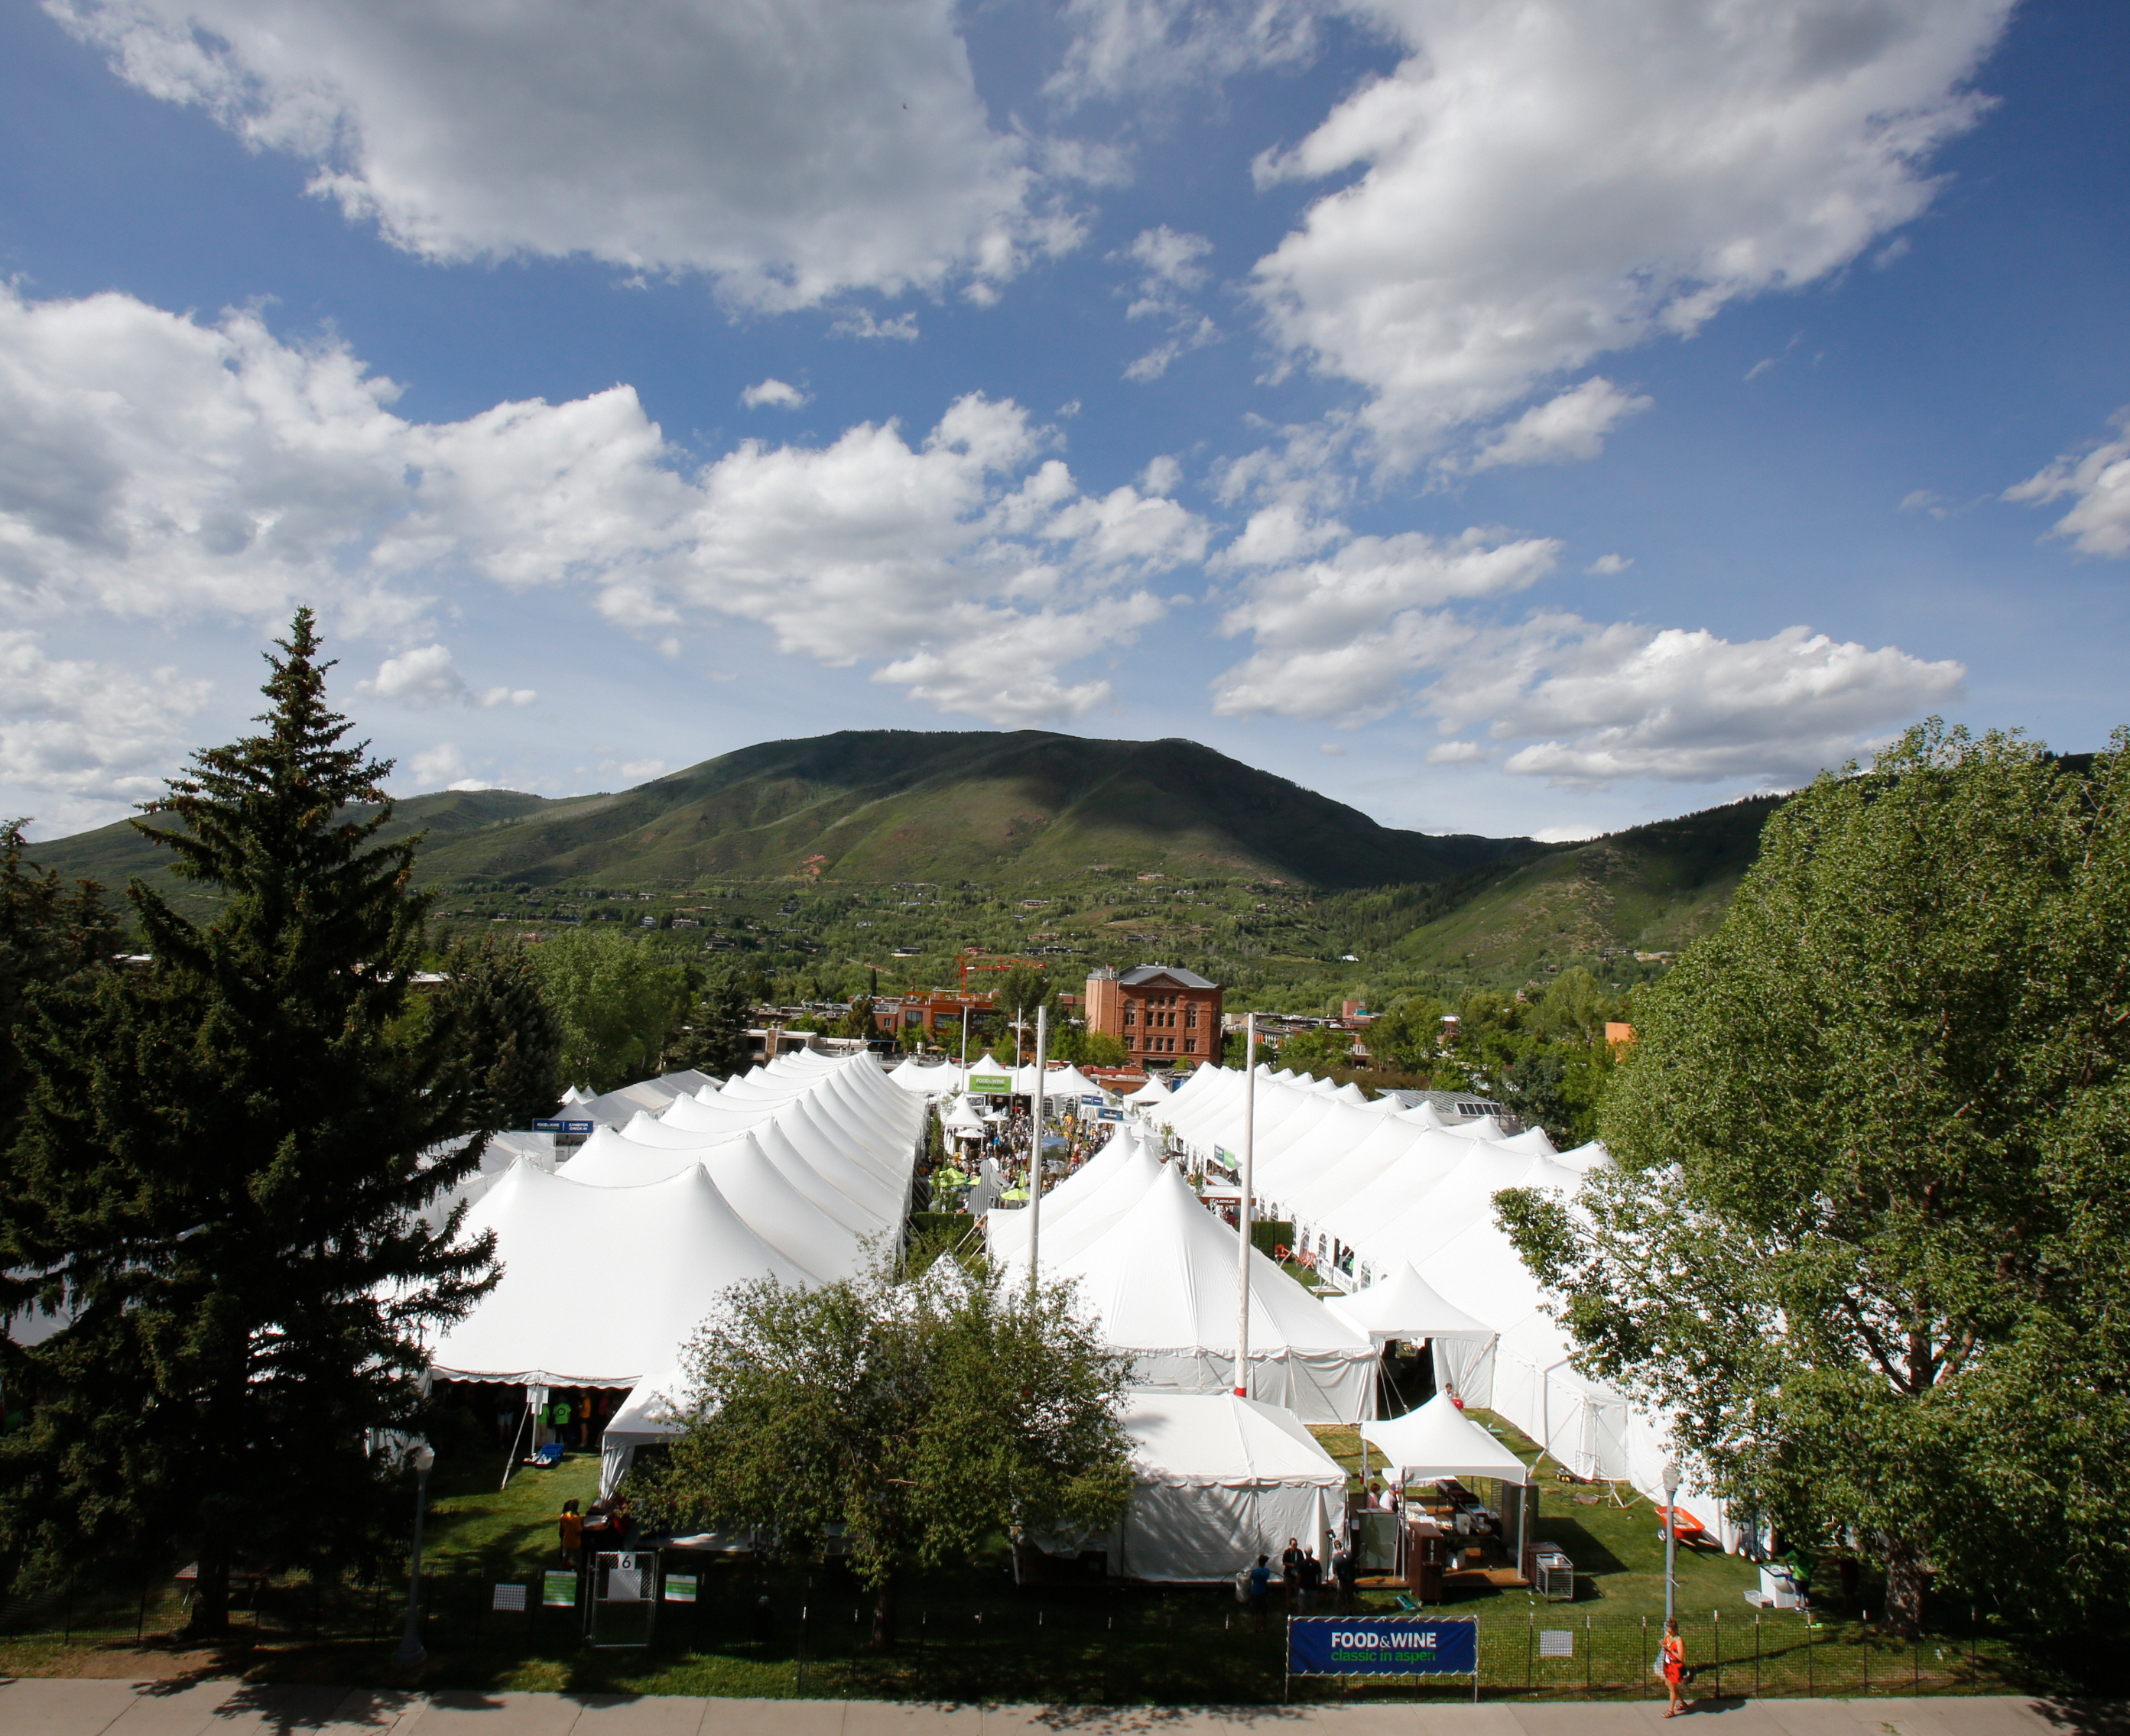 Taste of the Classic: Inside the 2017 Food & Wine Classic in Aspen